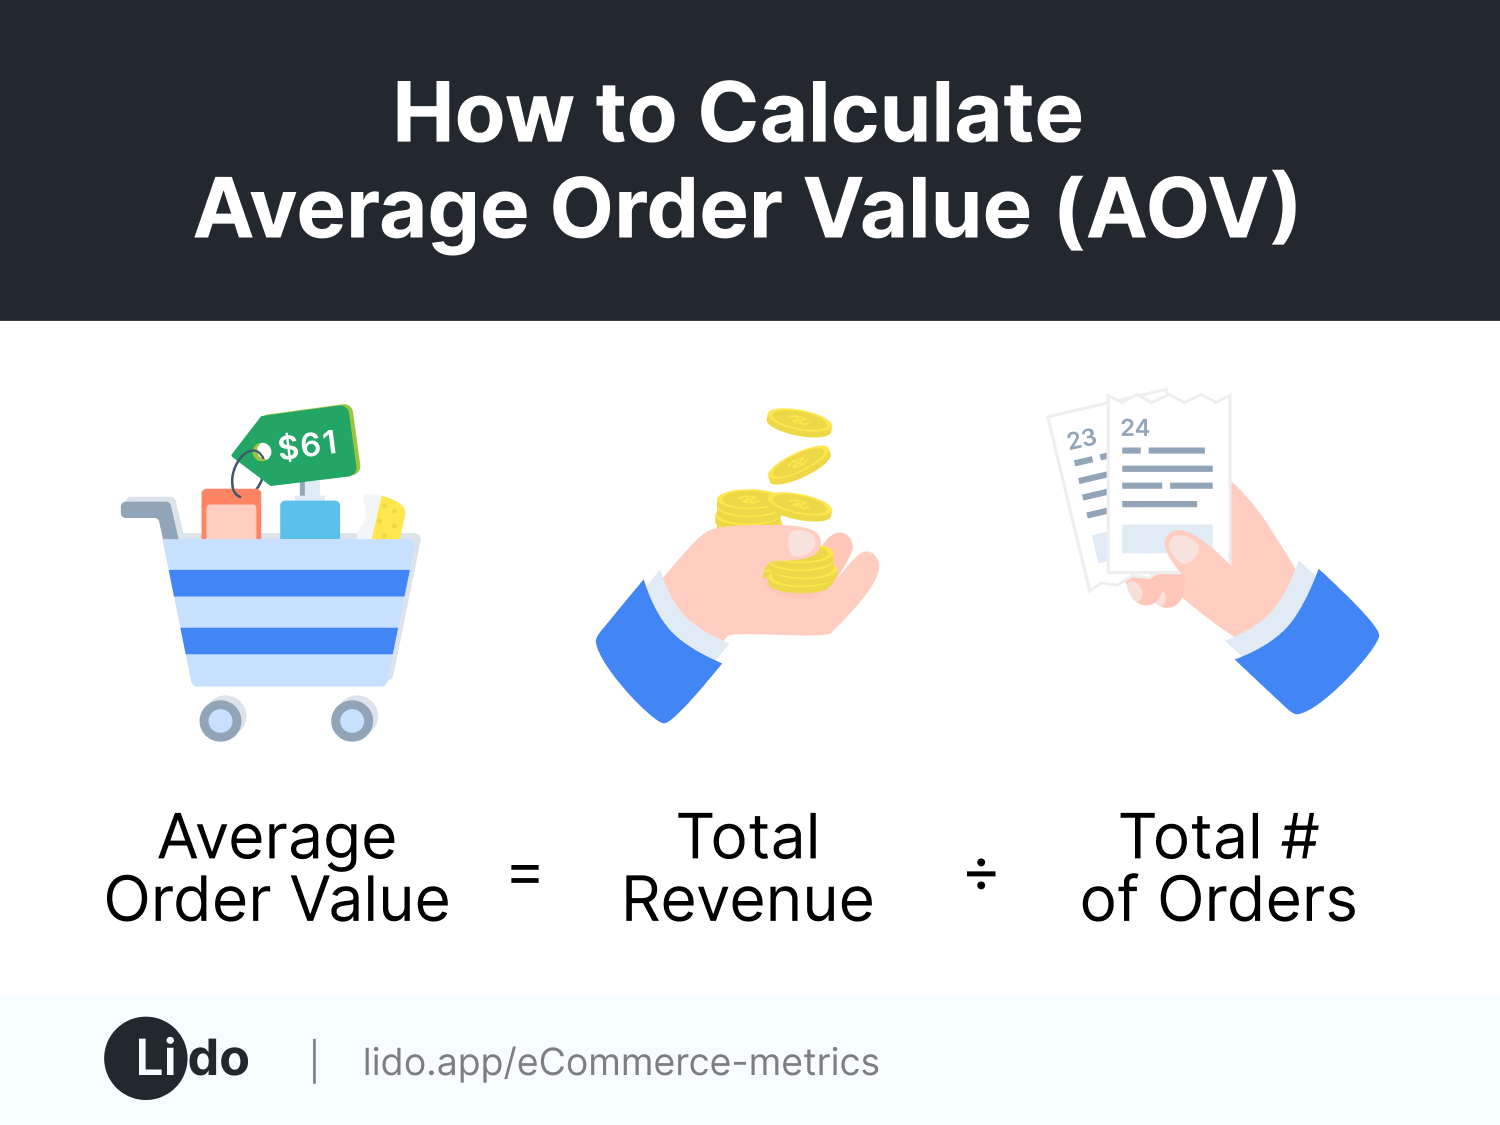 average order value equation (= total revenue / total # of orders) with corresponding icons